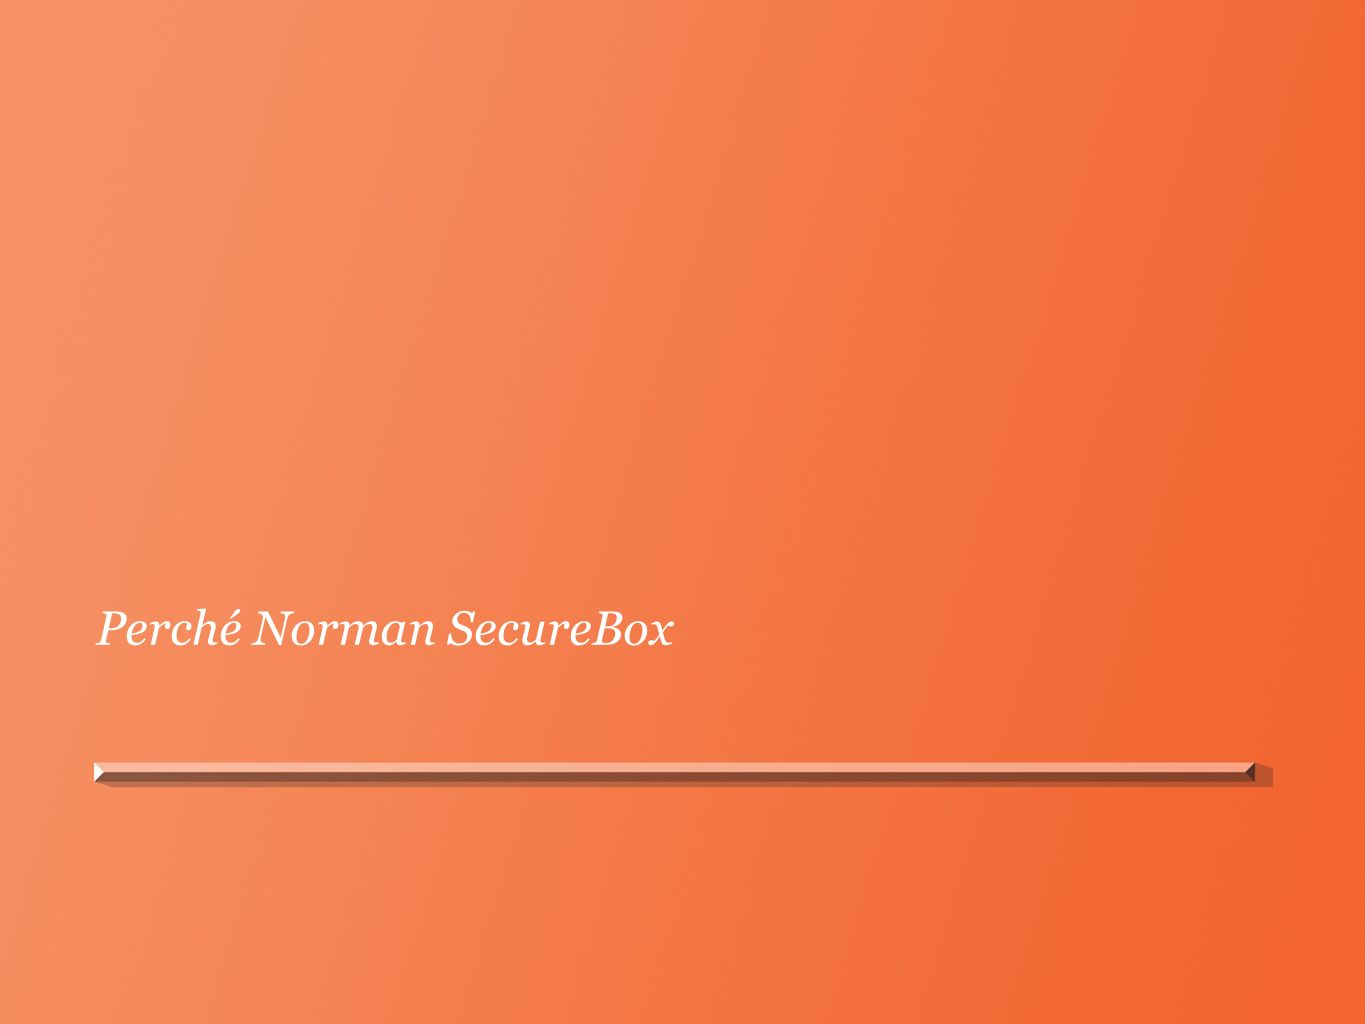 Perché Norman SecureBox